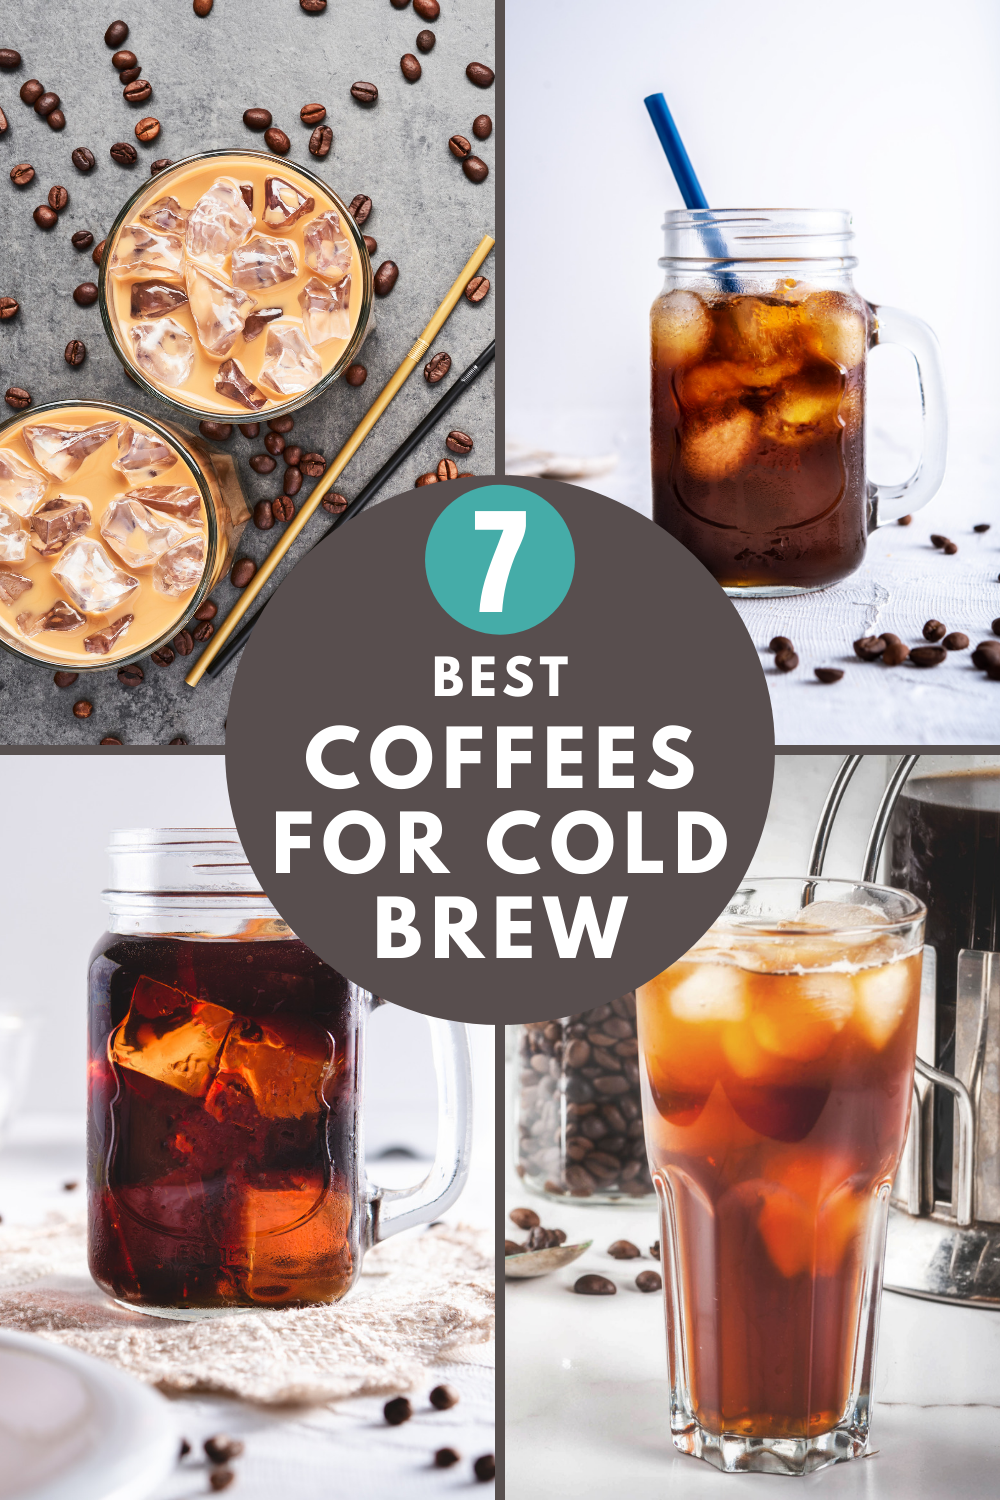 You're Not Making Cold Brew With the Wrong Beans, Are You